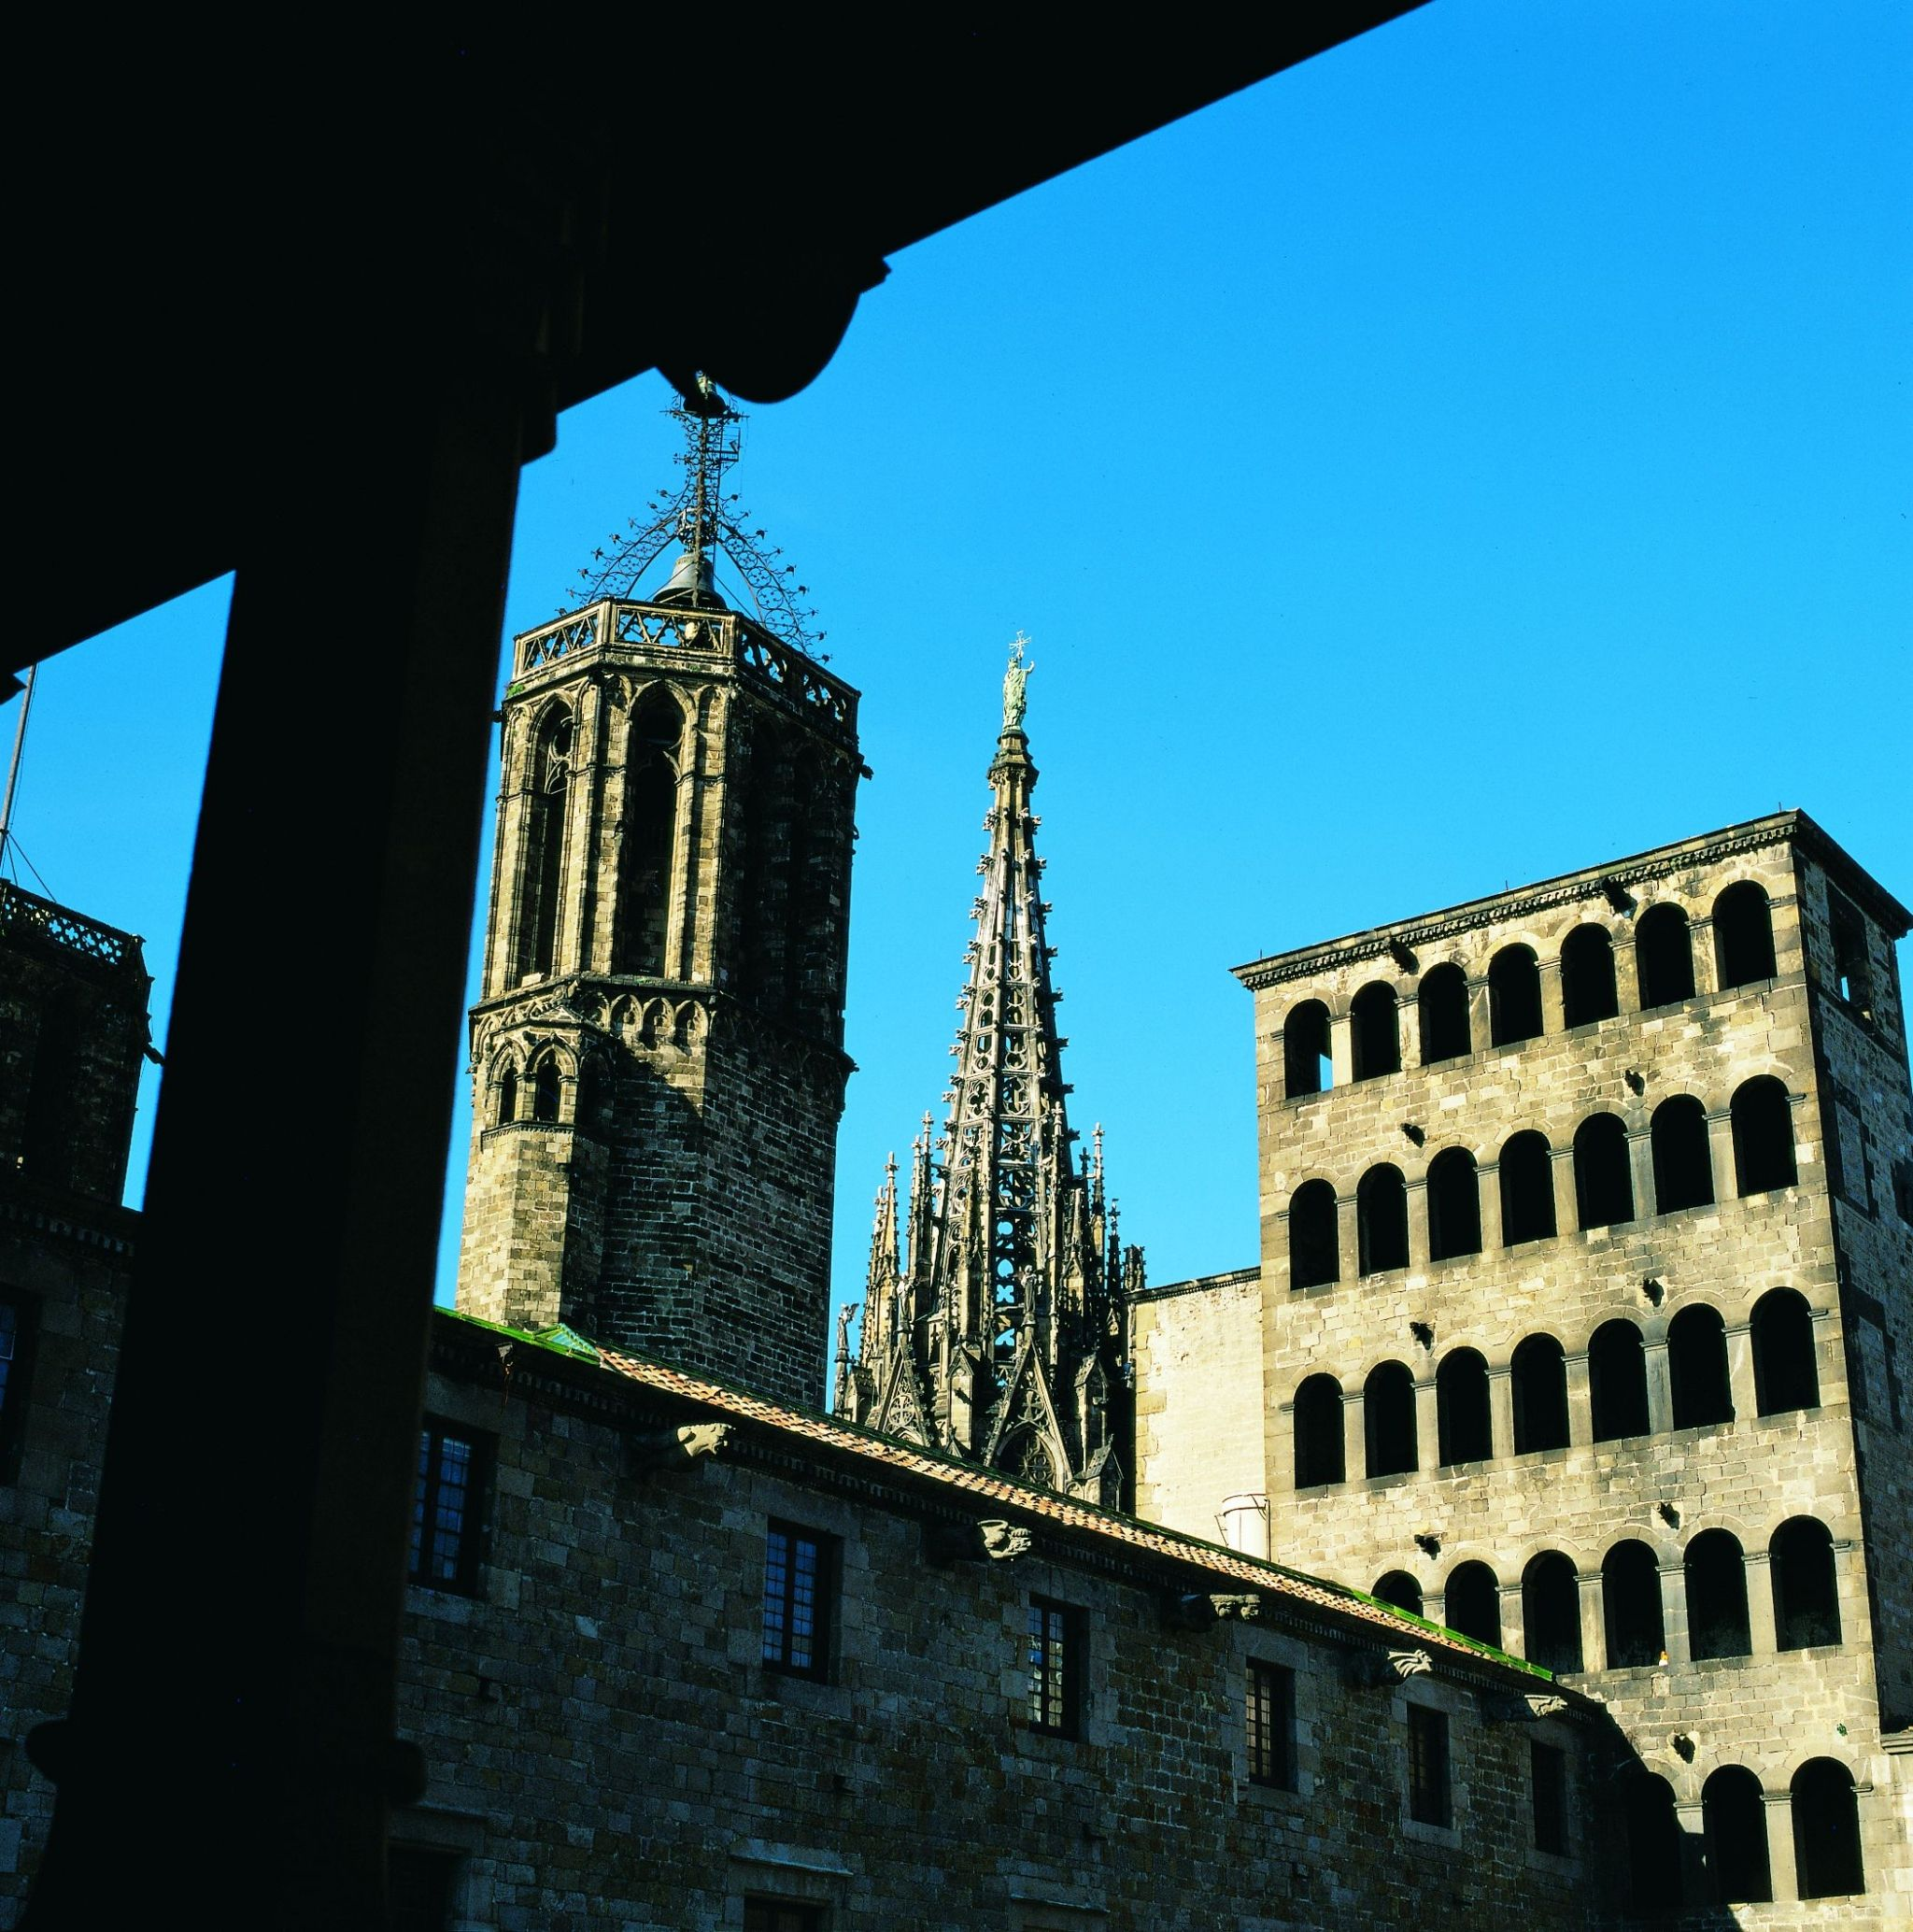 View of the Cathedral of the Holy Cross and Saint Eulalia